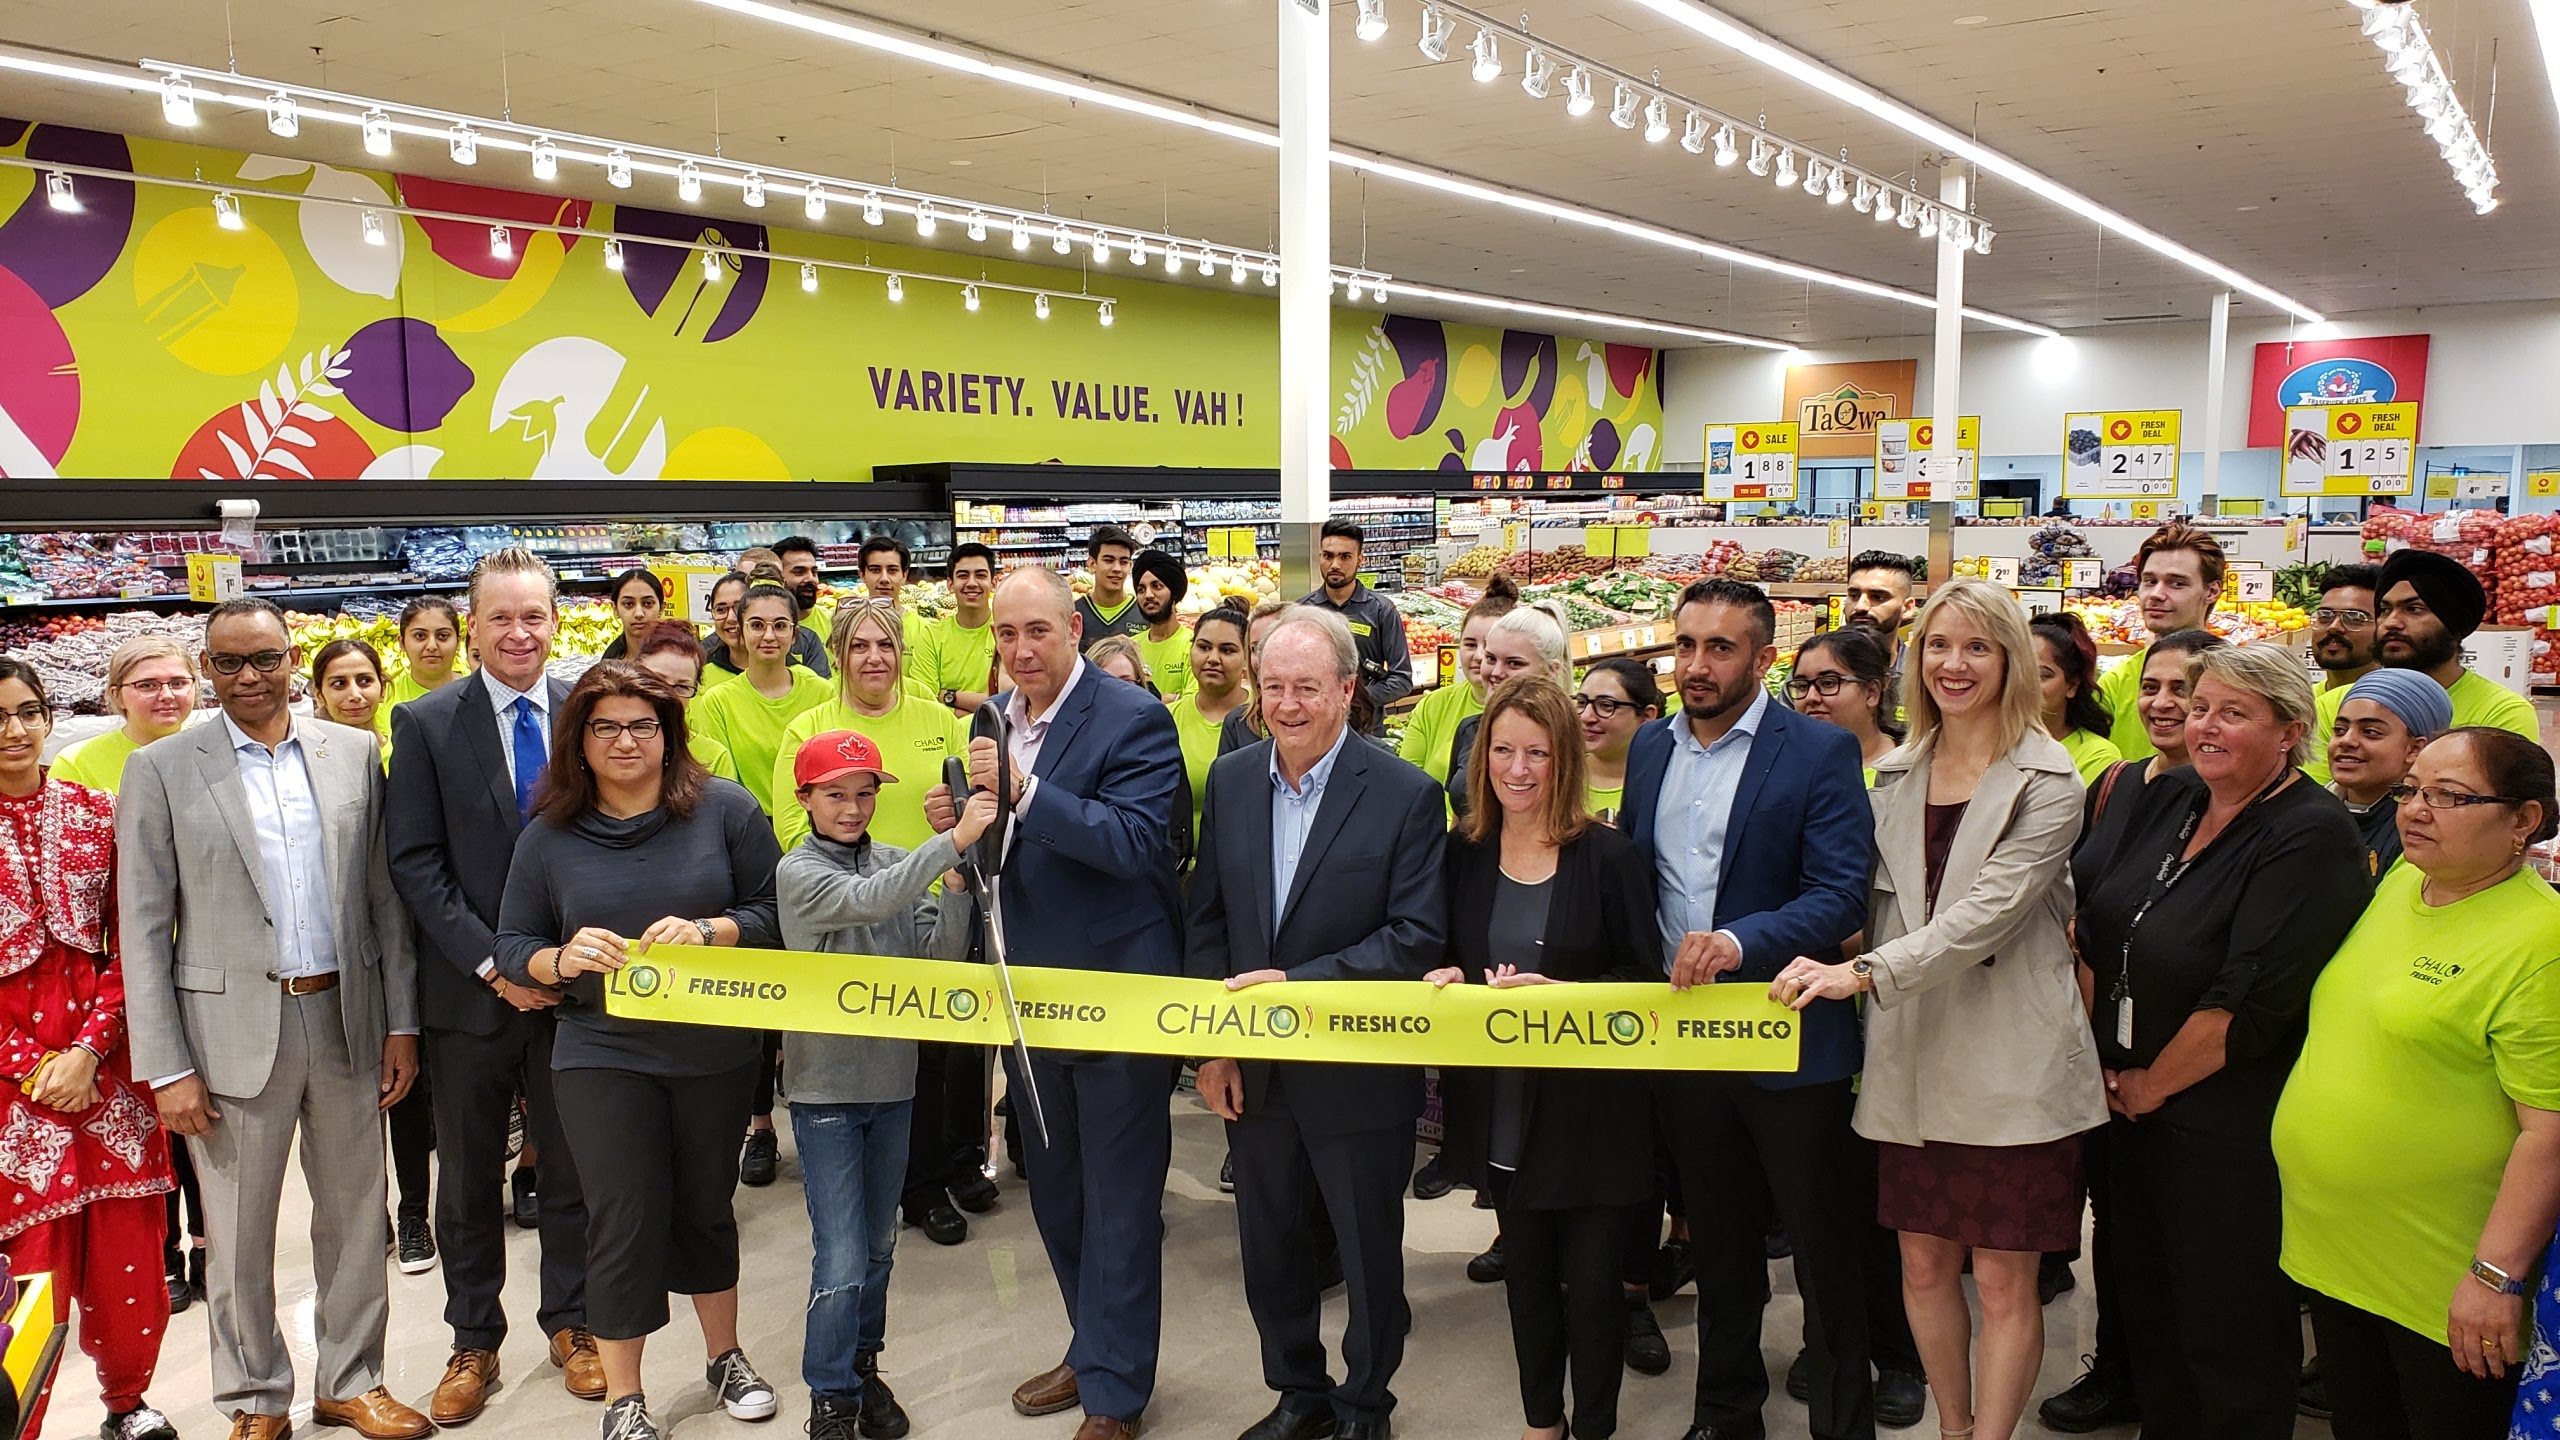 Chalo! FreshCo welcomes customers with two new locations in